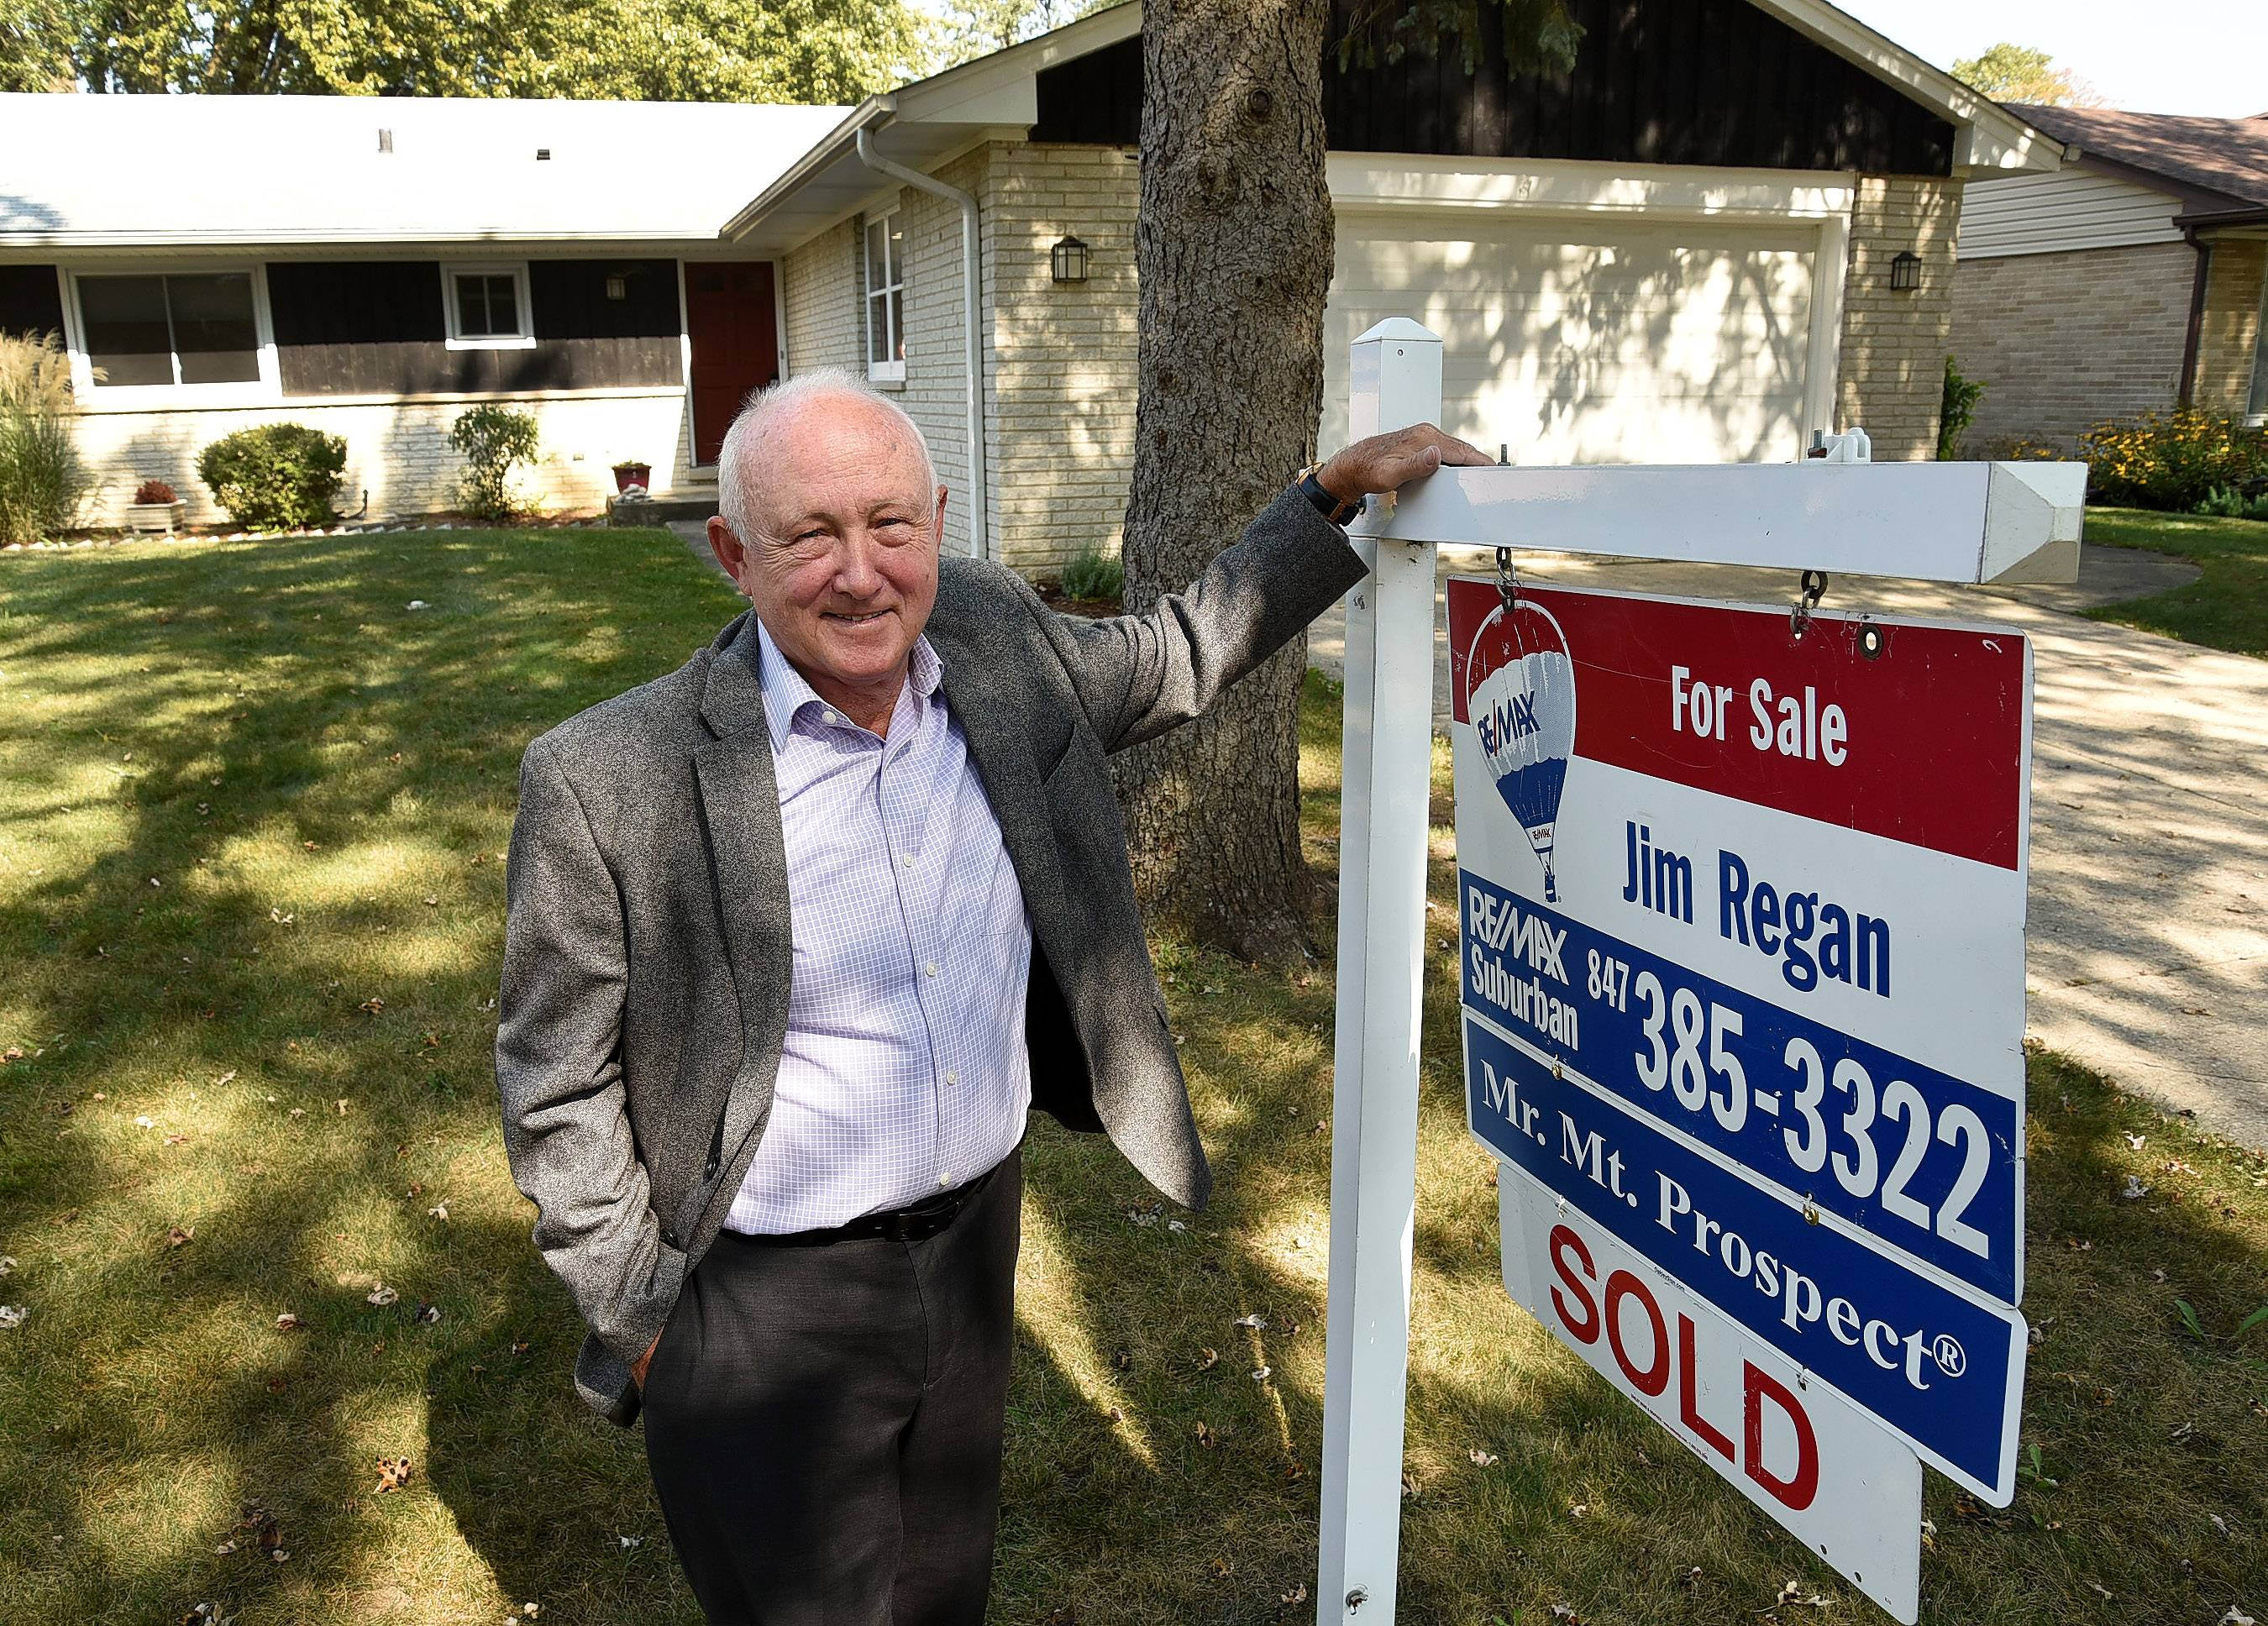 Jim Regan, RE/MAX Suburban, next to his sign in front of one of his listings in Mount Prospect.